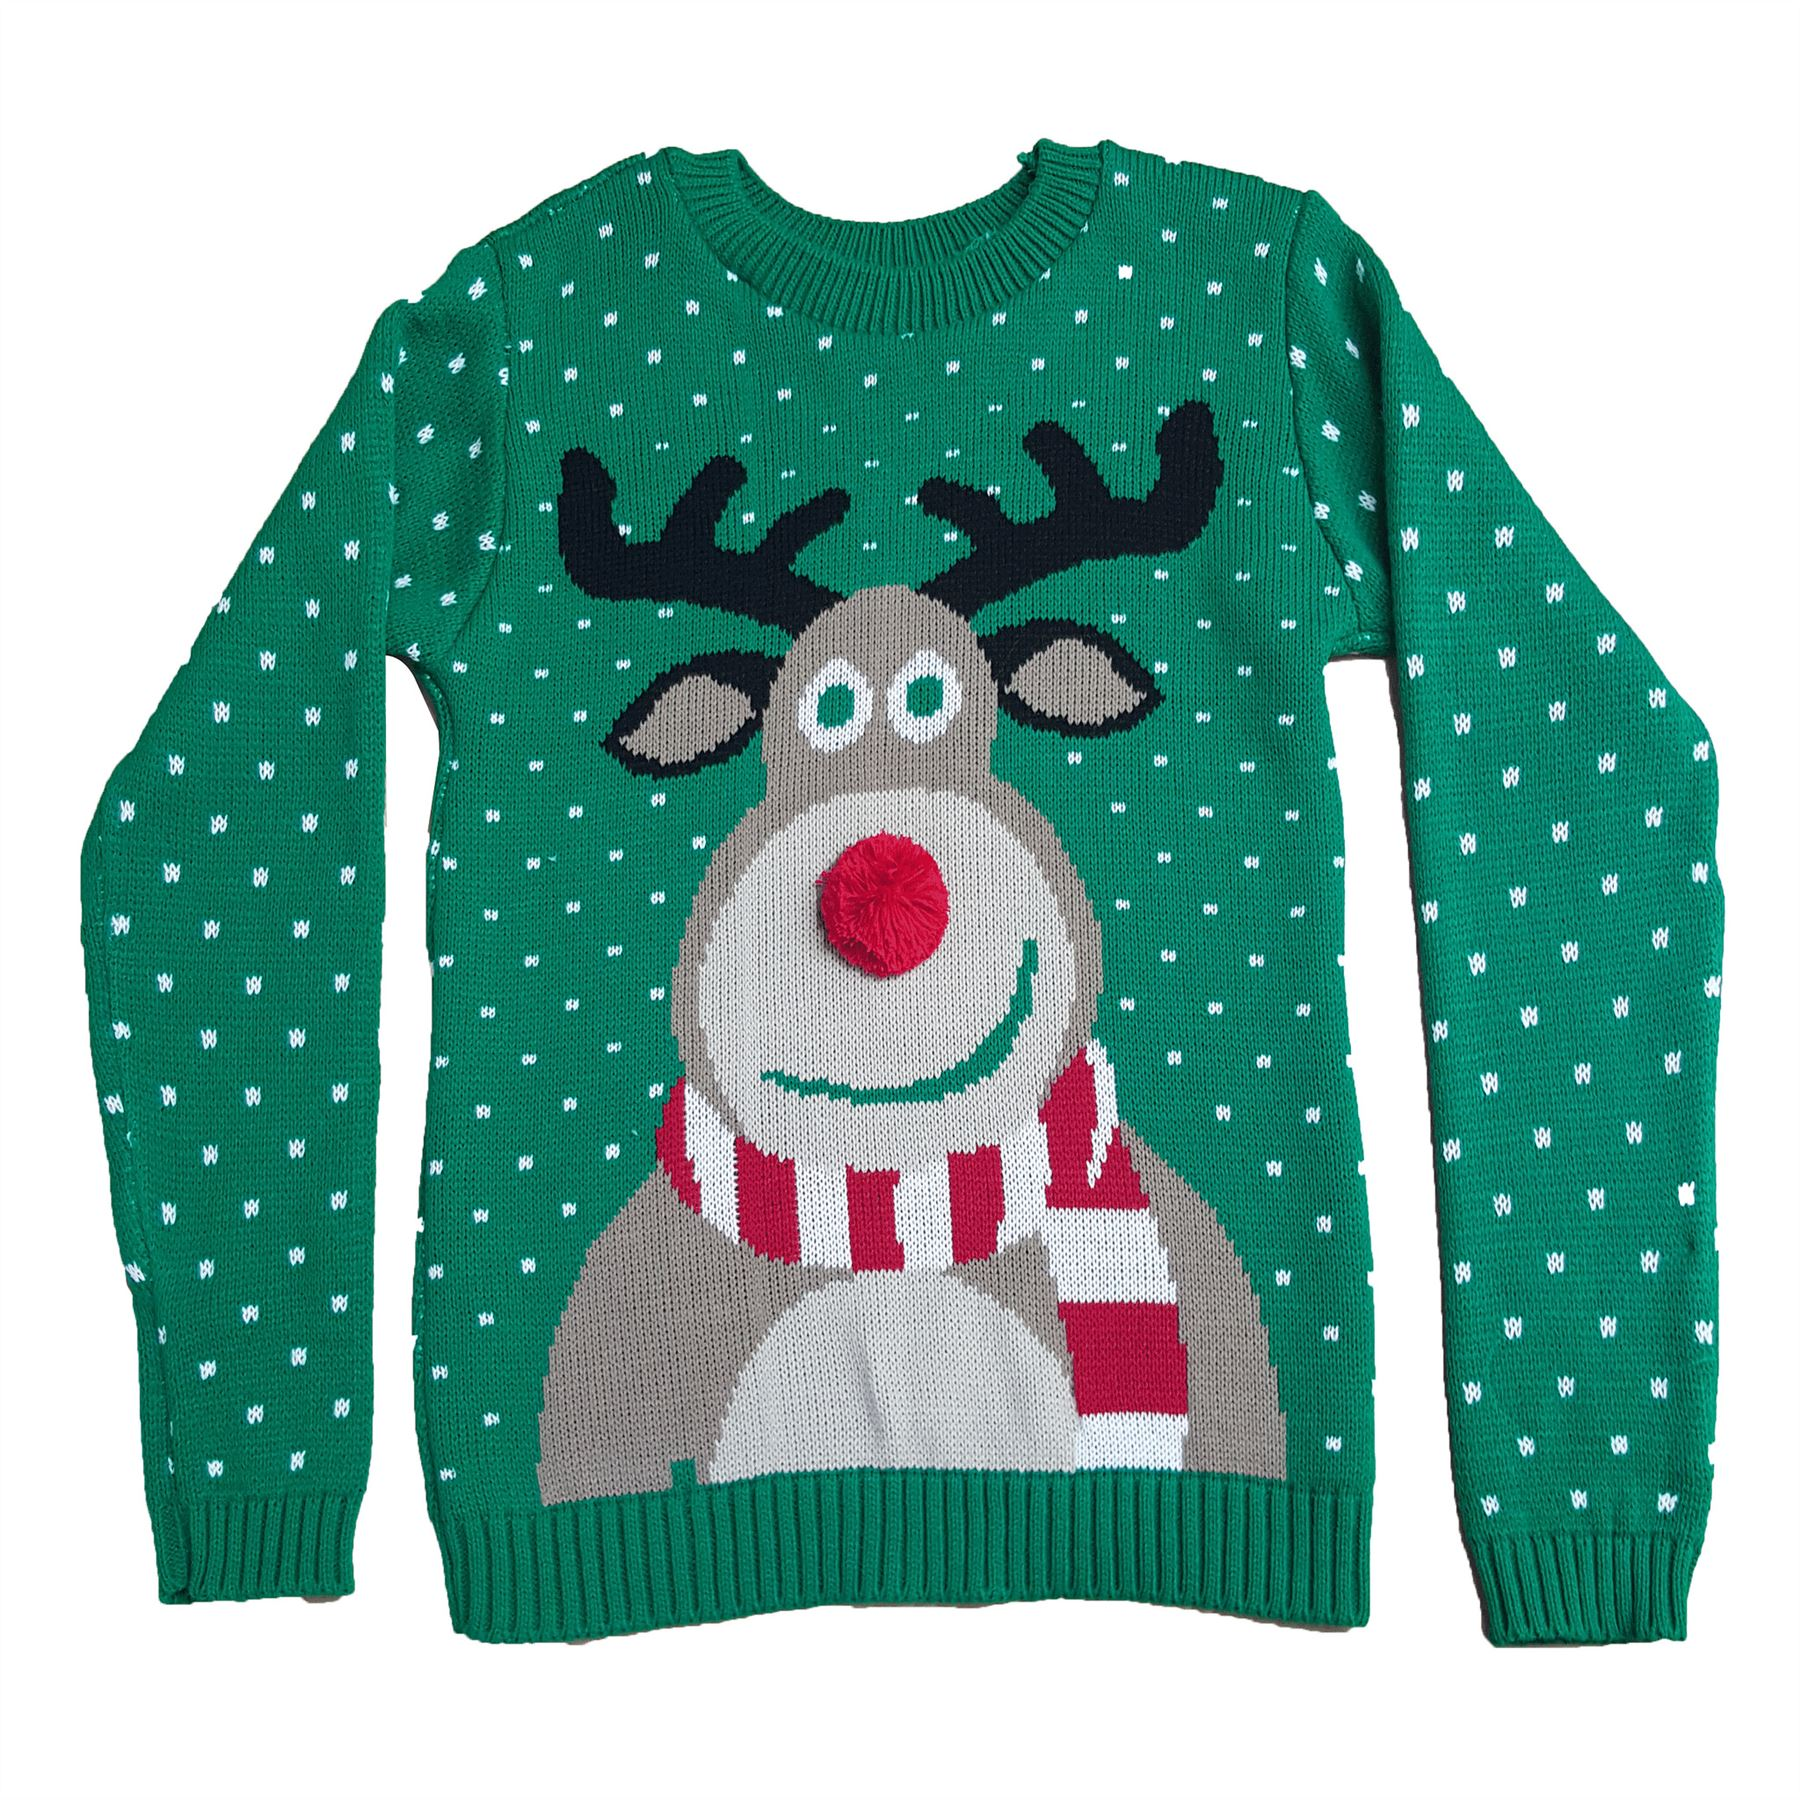 The Kids Christmas Jumpers Range from Funky Christmas Jumpers are available in sizes 2, 4, 6, 8 & 10 (see size guide for more detail). We ship all of our Christmas jumpers, sweaters and cardigans to Ireland, the UK, the US and even the North Pole.